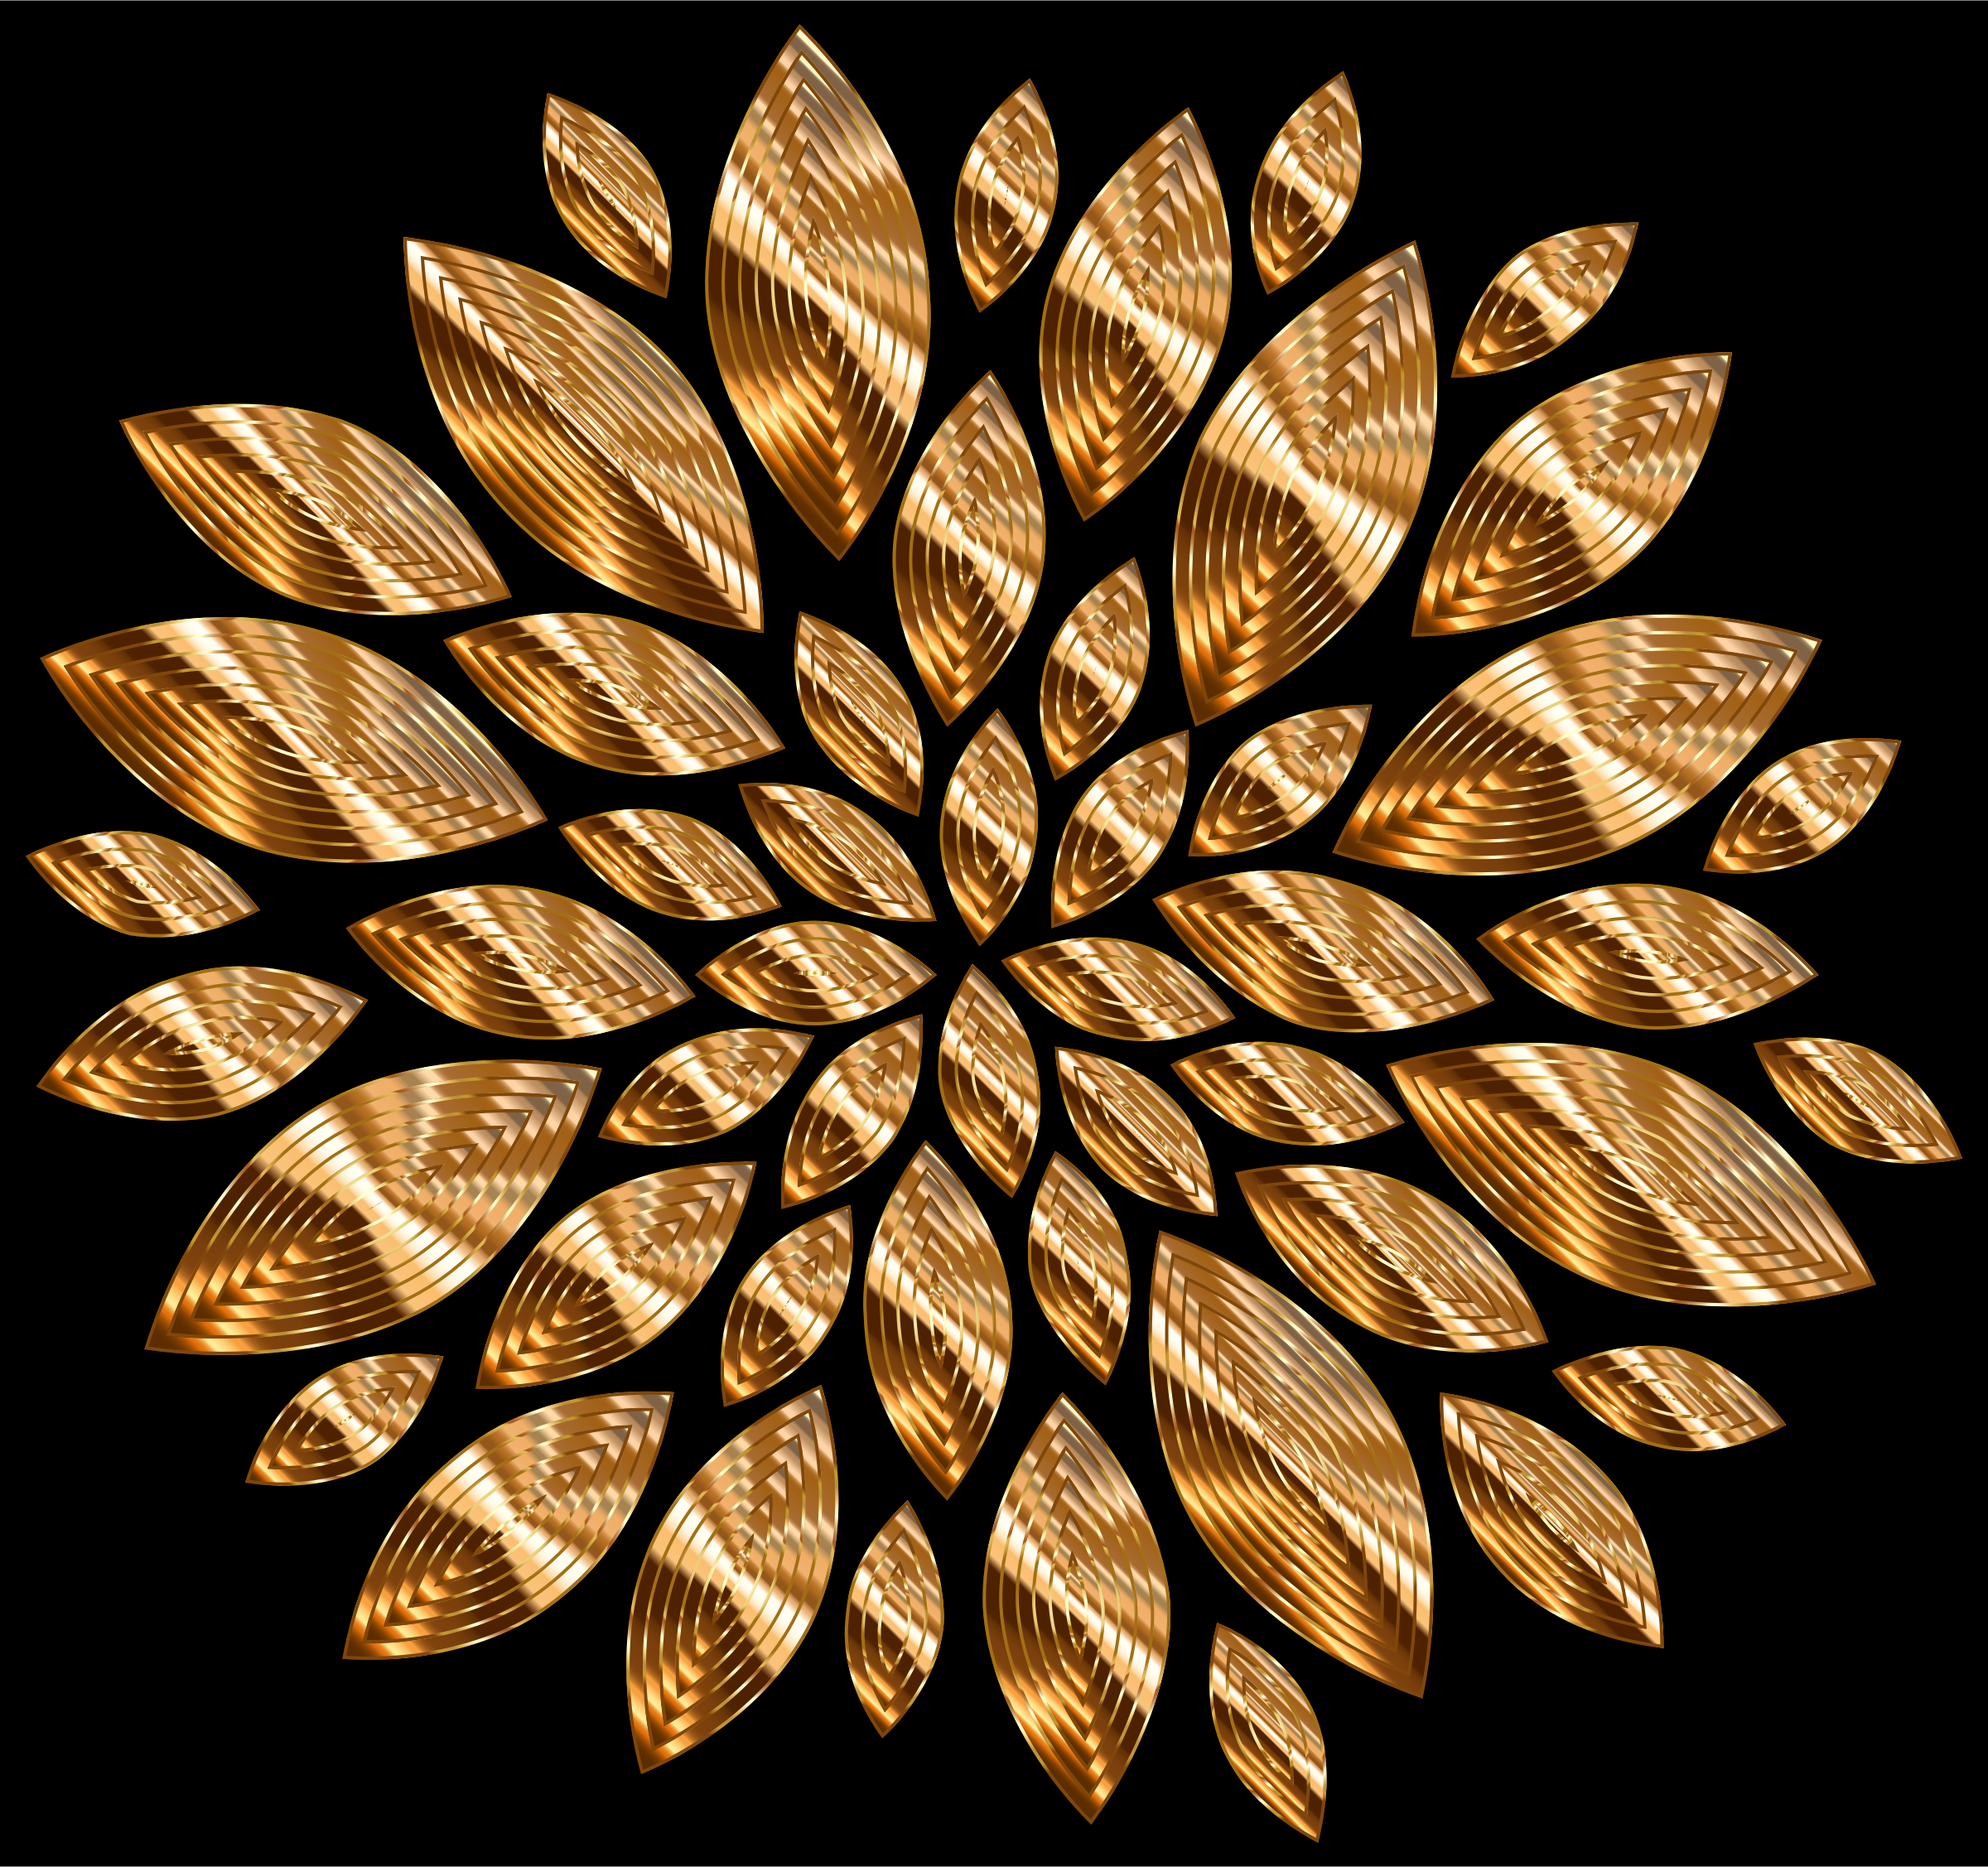 Gold Flower Petals Variation 4 With Background by GDJ